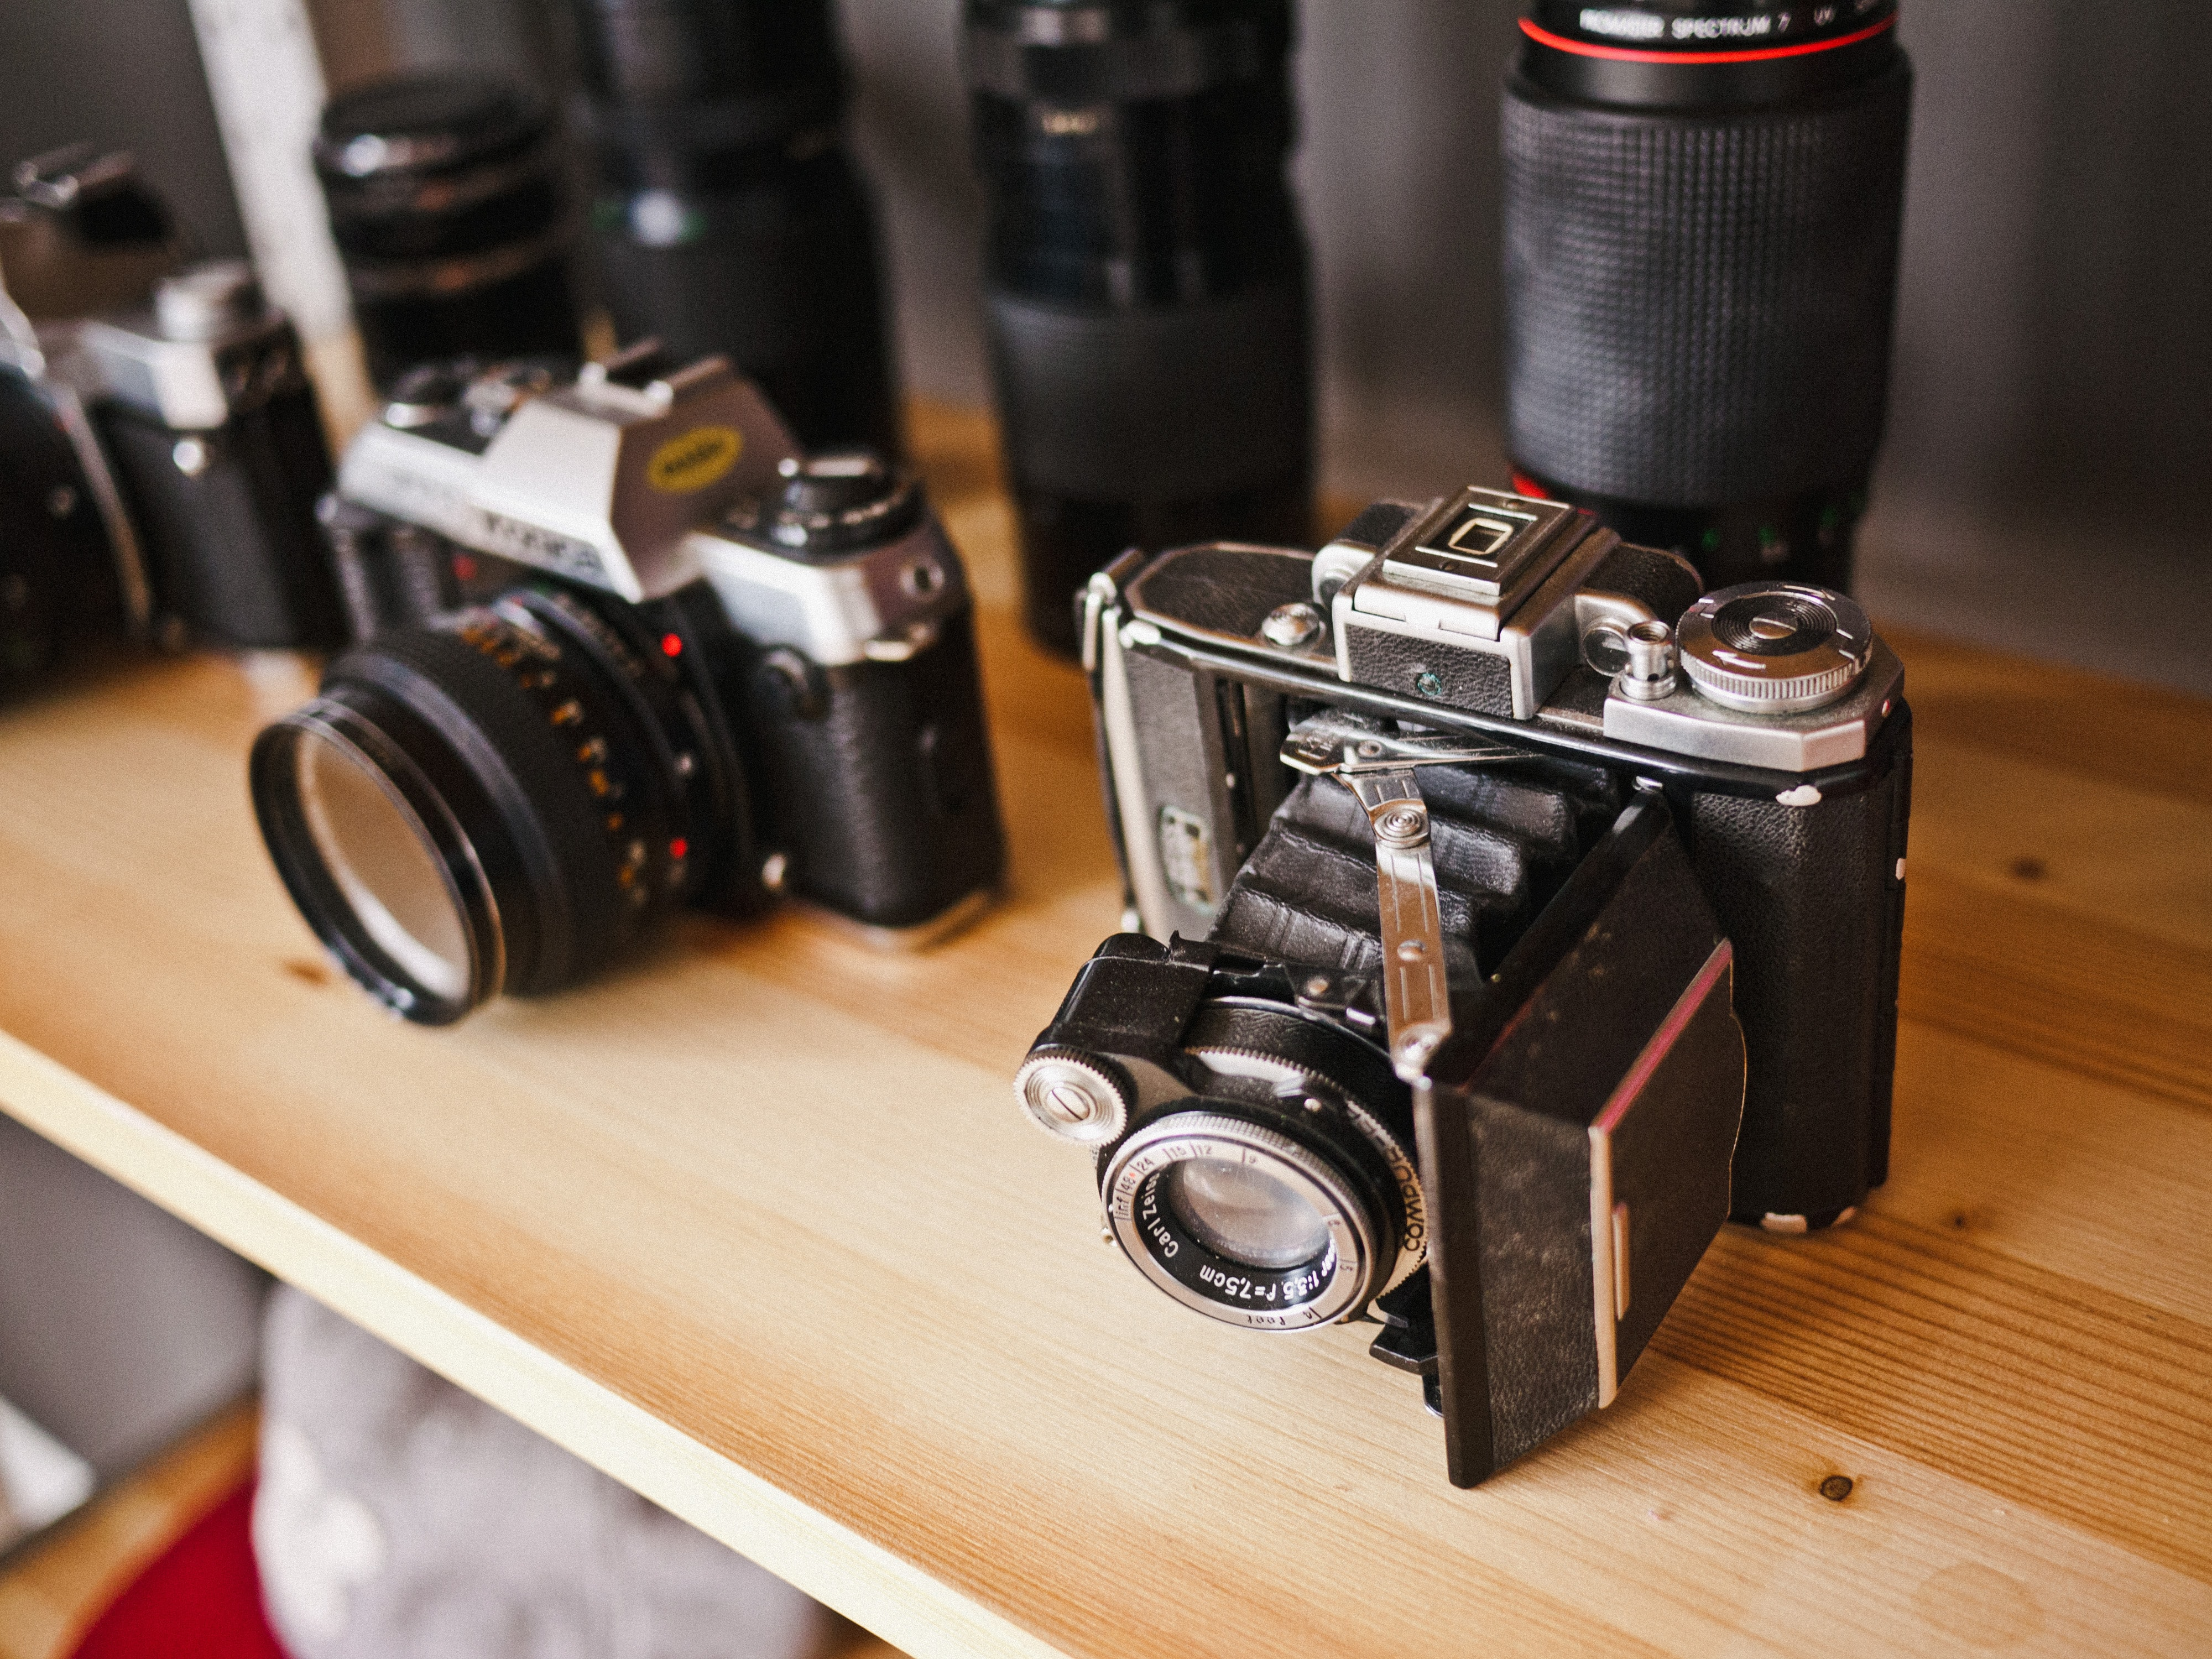 Vintage cameras and lenses on a shelf